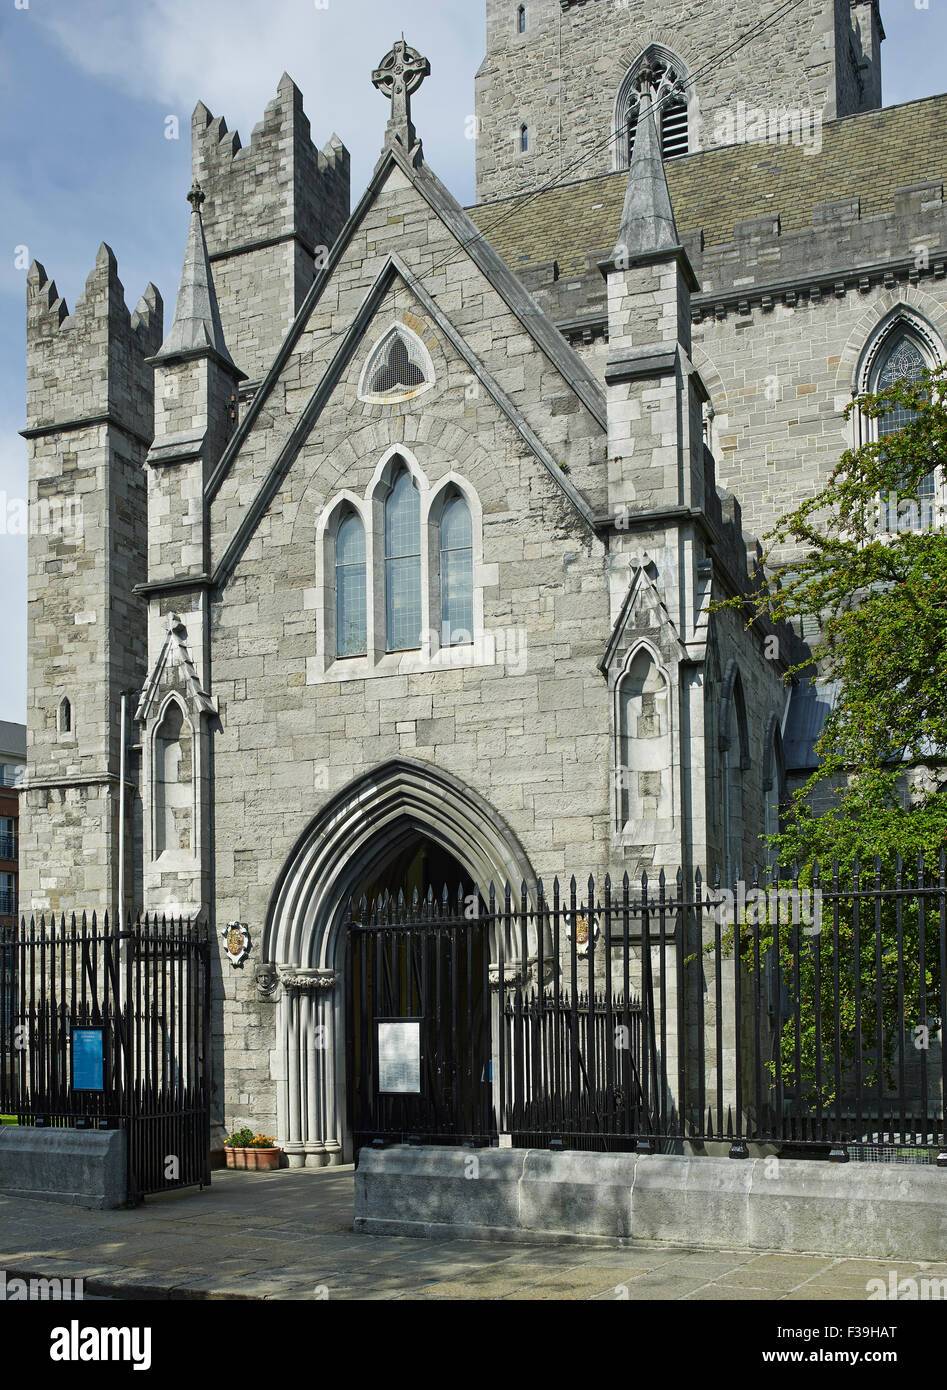 St Patrick's Cathedral Dublin porch - Stock Image